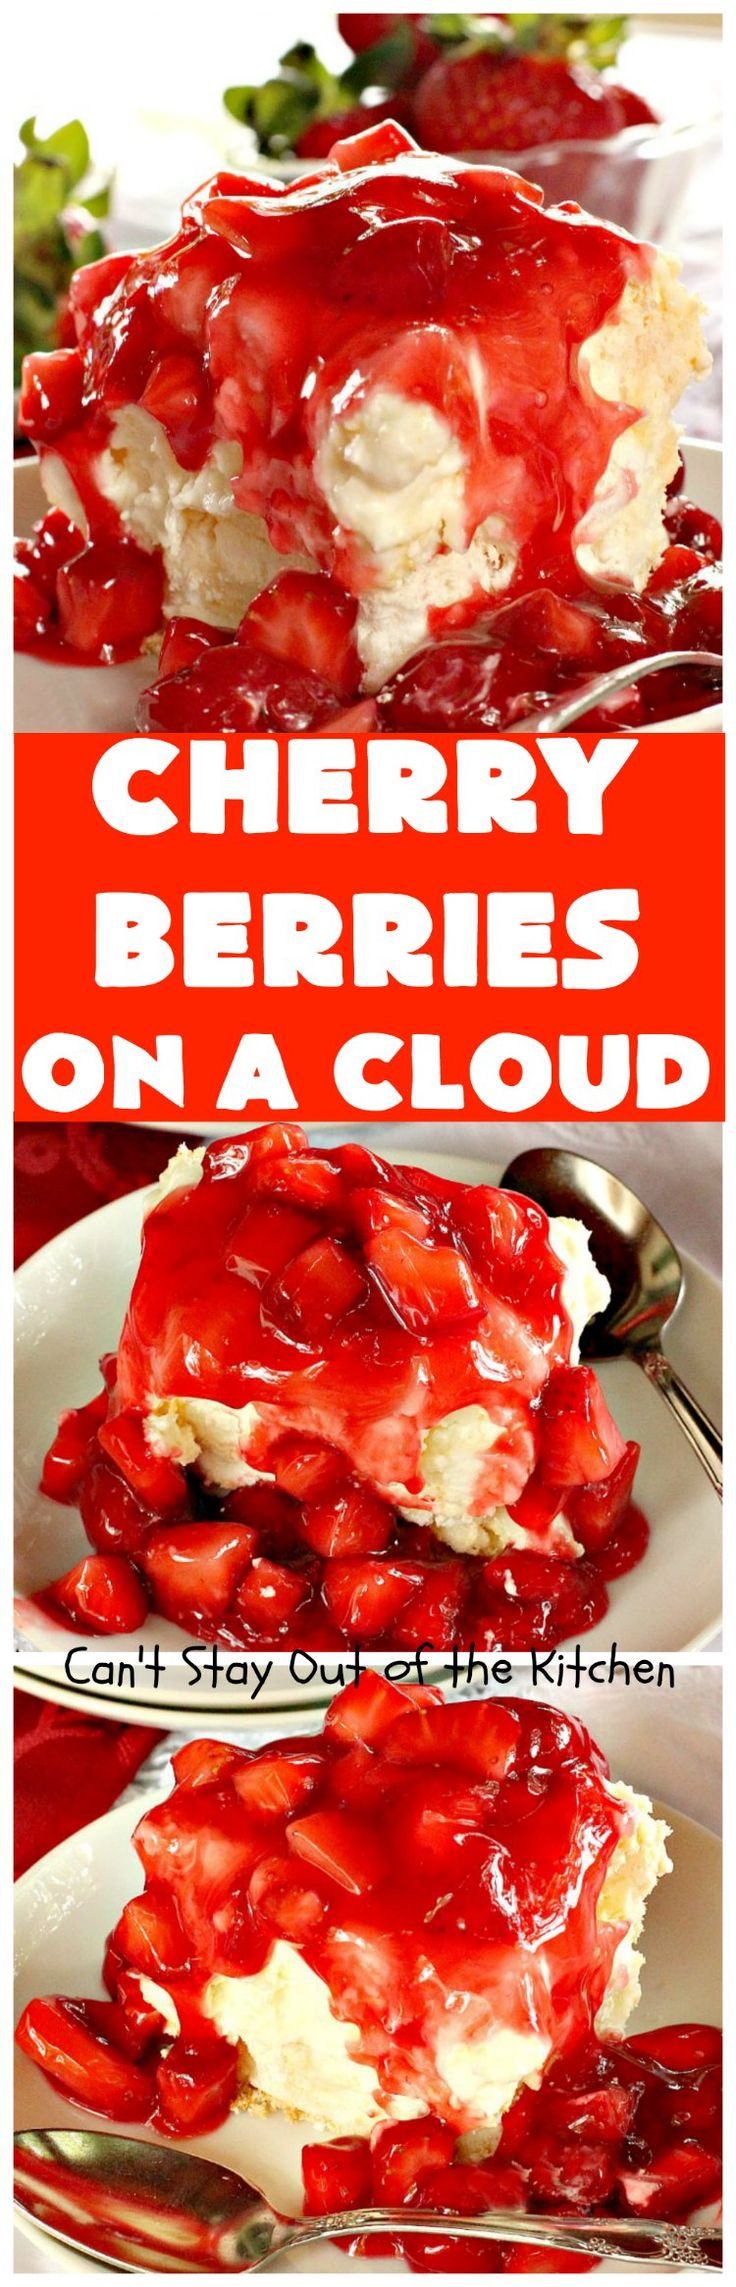 Cherry Berries On A Cloud!